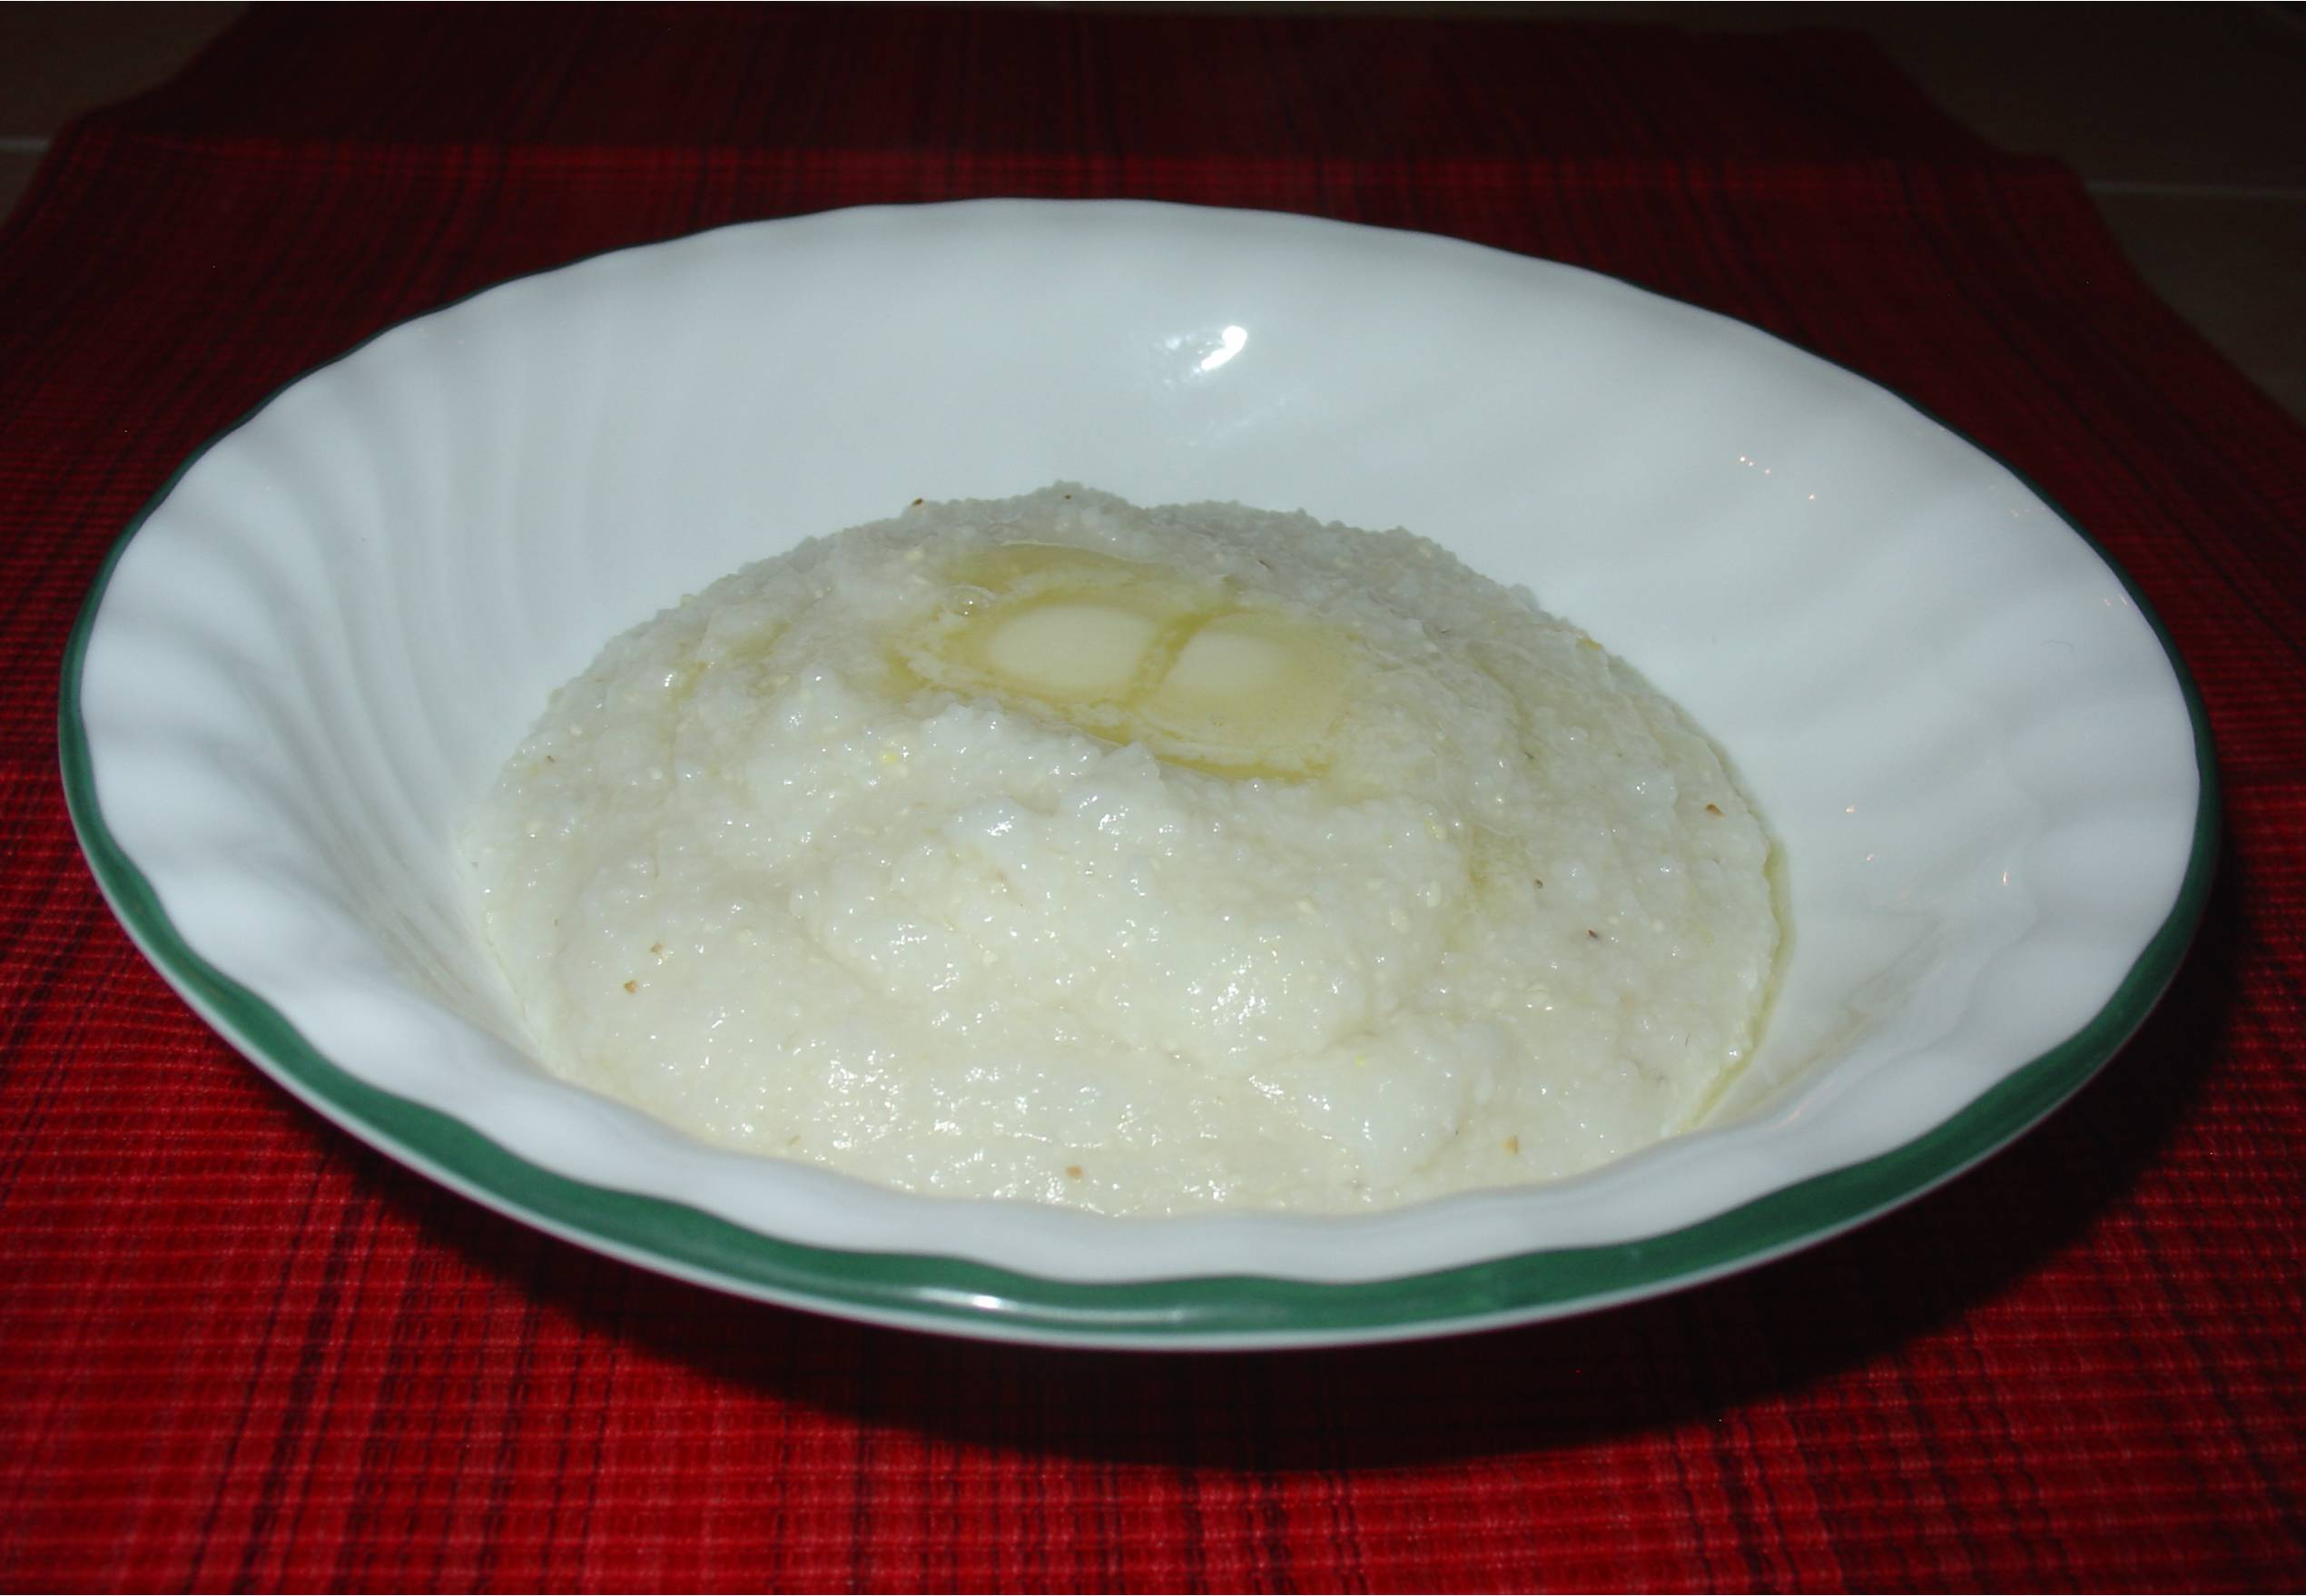 Bowl of Grits